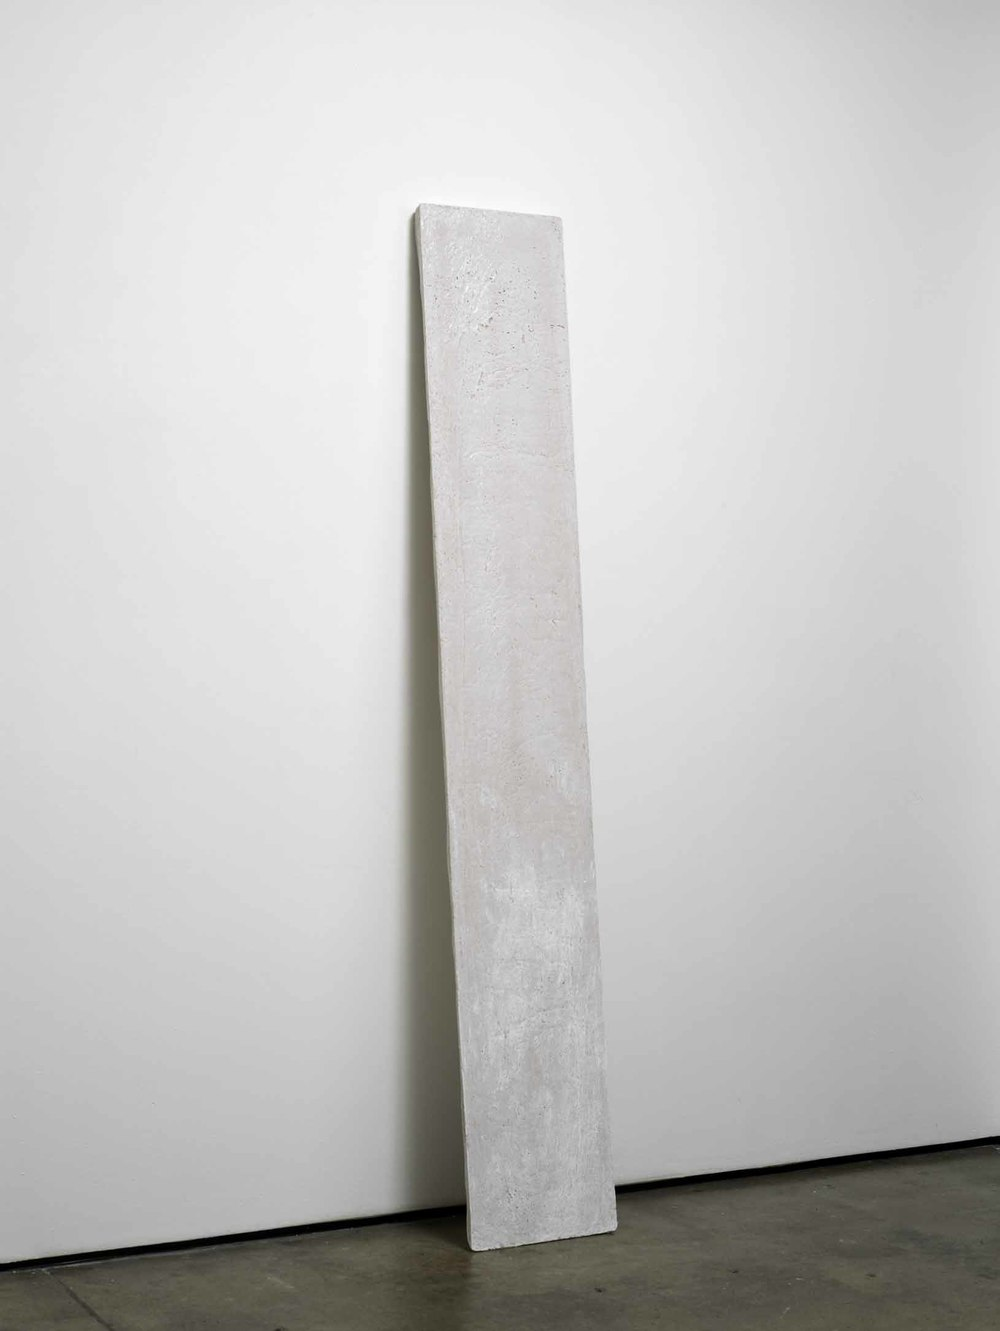 j (working title)    2011    Concrete    200 x 32 x 2.5 cm / 78.7 x 12.5 x 1 in